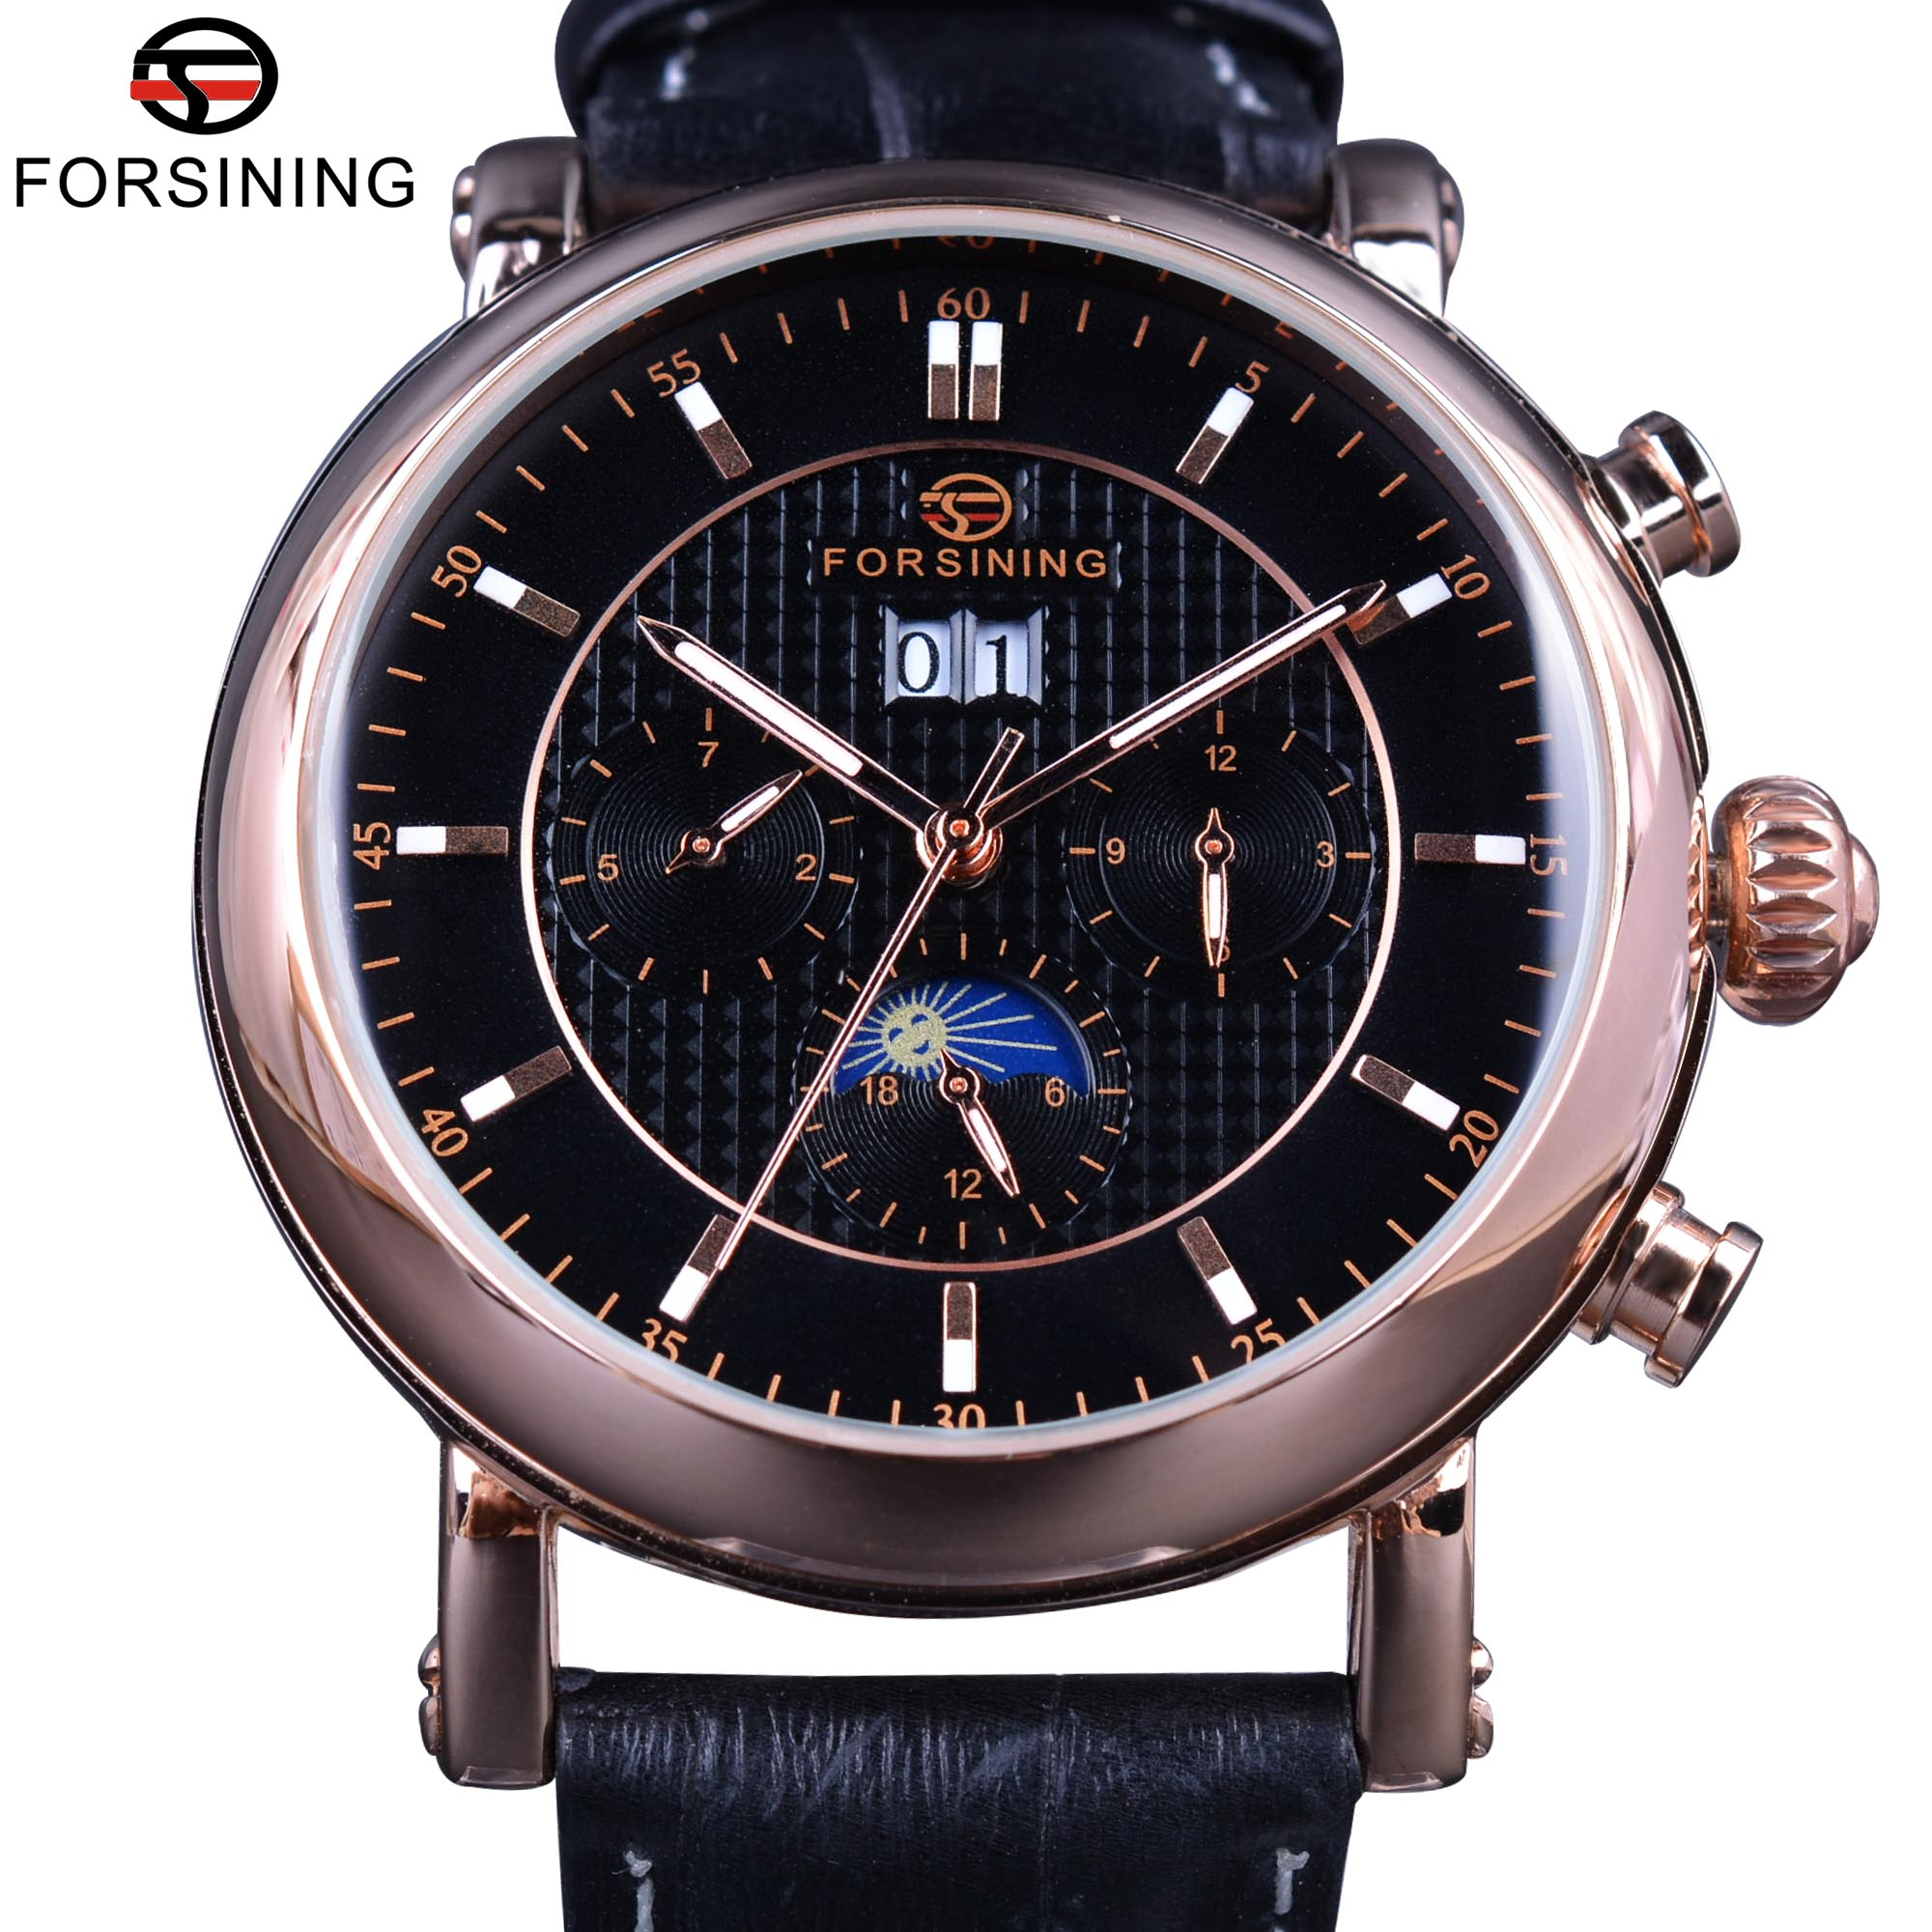 Forsining 2017 Rose Golden Design Moon Phase Calendar Display Mens Watches Top Brand Luxury Automatic Fashion Mechanical Watch forsining 3d skeleton twisting design golden movement inside transparent case mens watches top brand luxury automatic watches